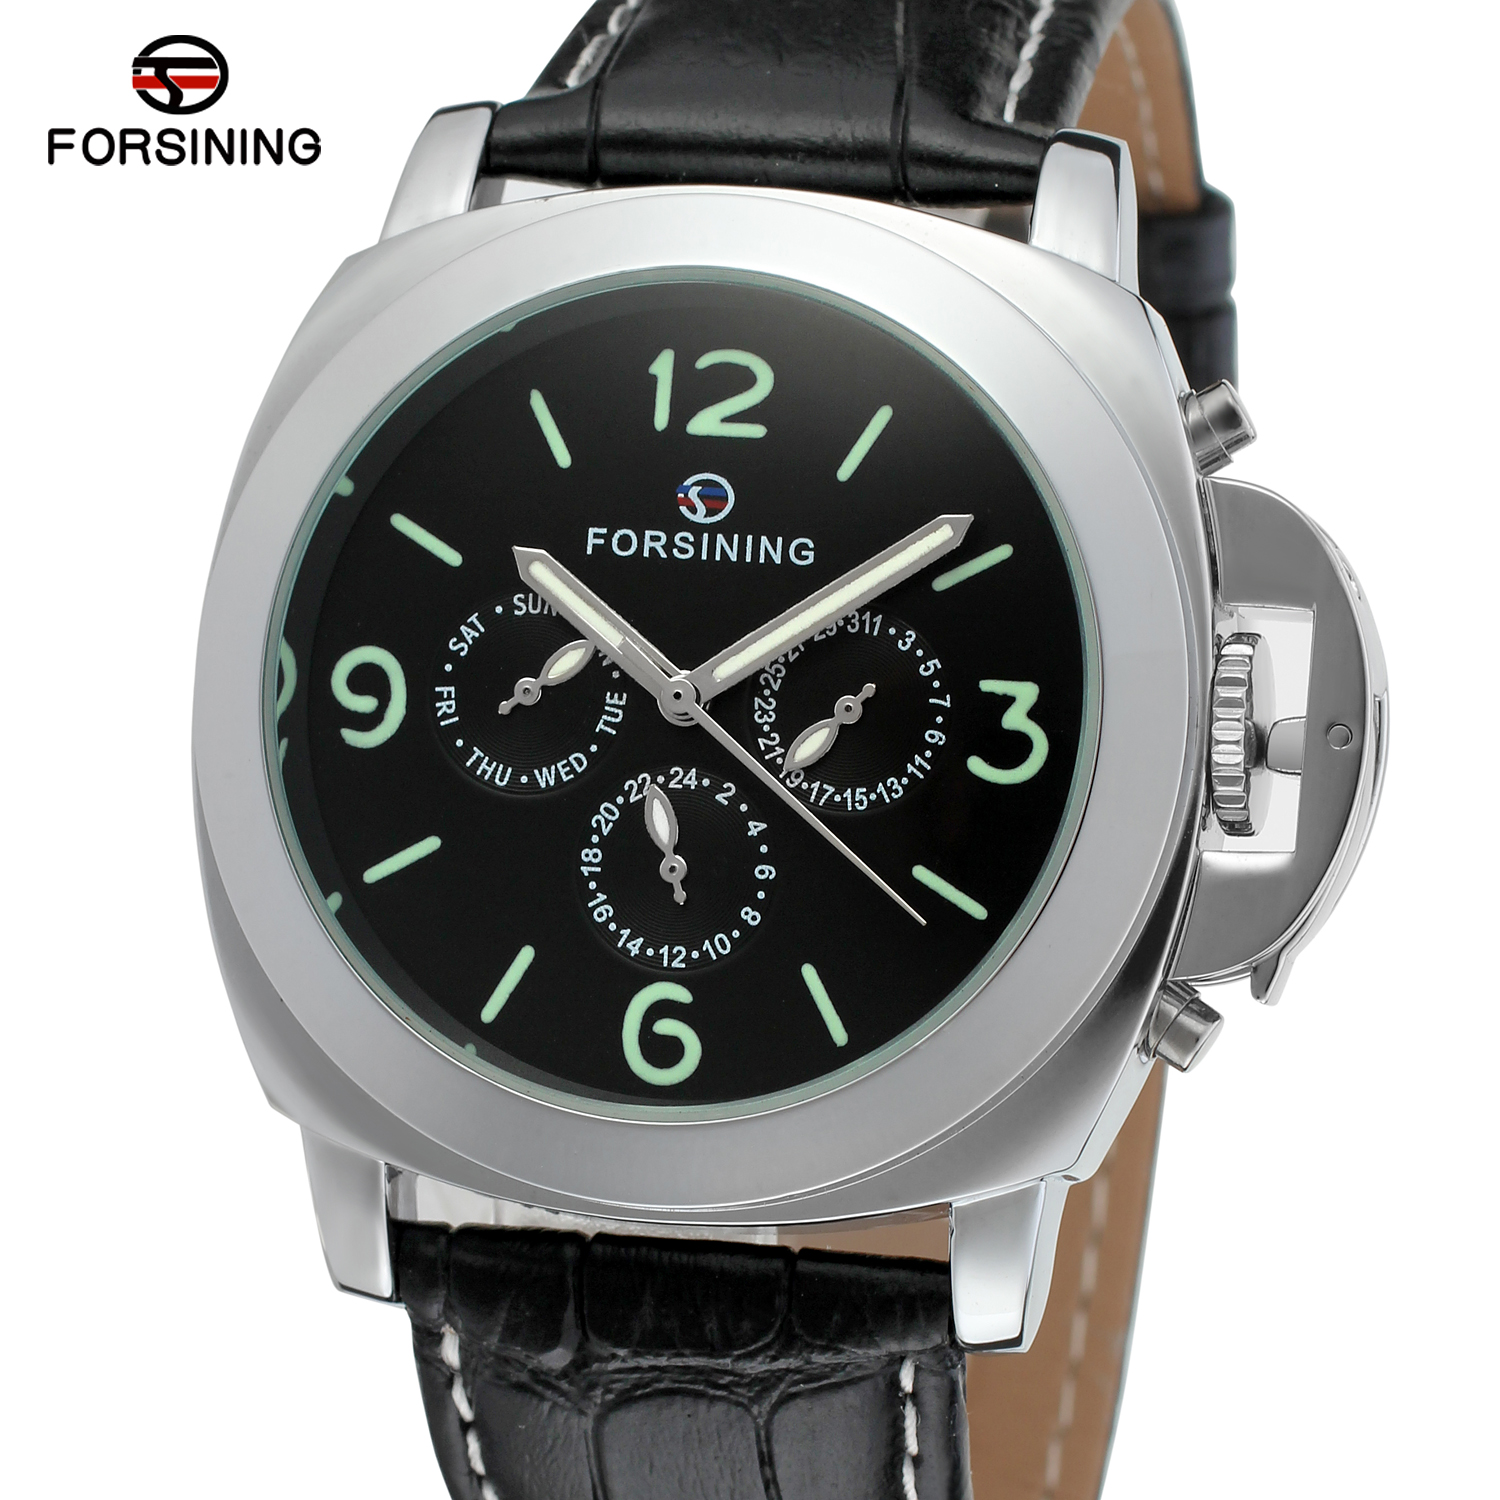 Forsining Men's Top Brand New Automatic Self-winding Genuine Leather Strap Fashion Casual Wristwatch With Date Week For Man Gift